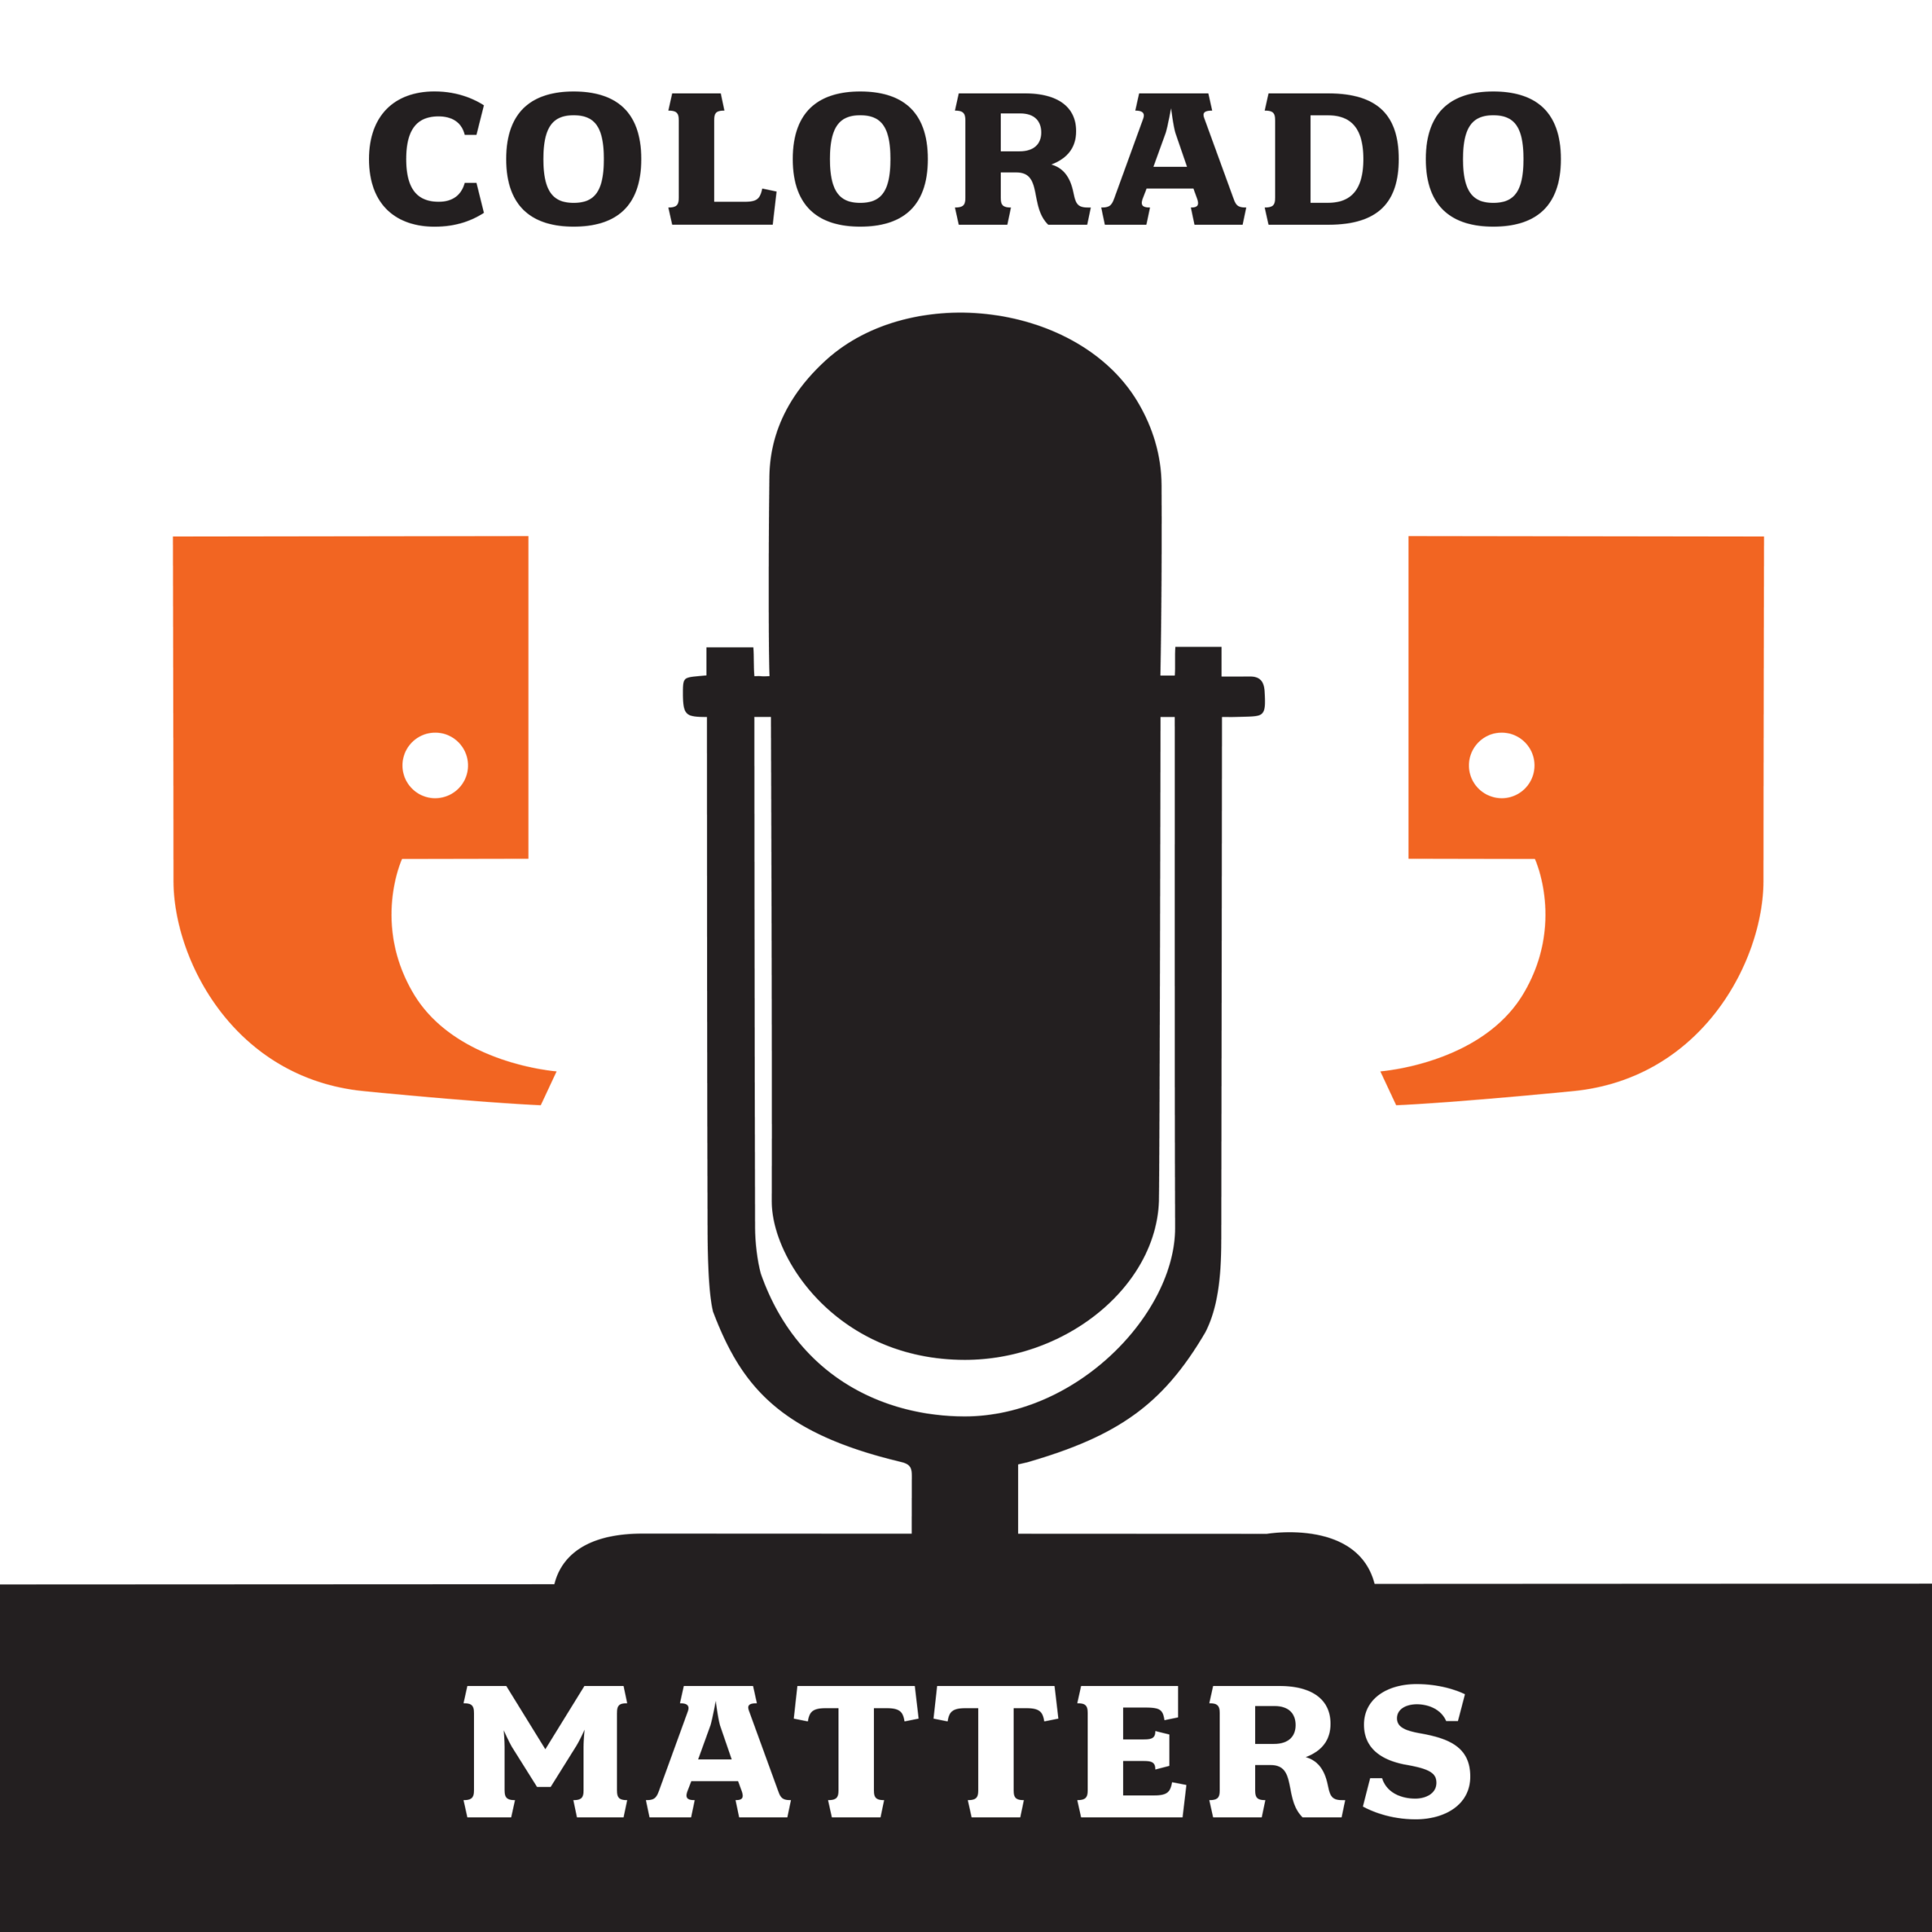 Colorado Matters logo 2020